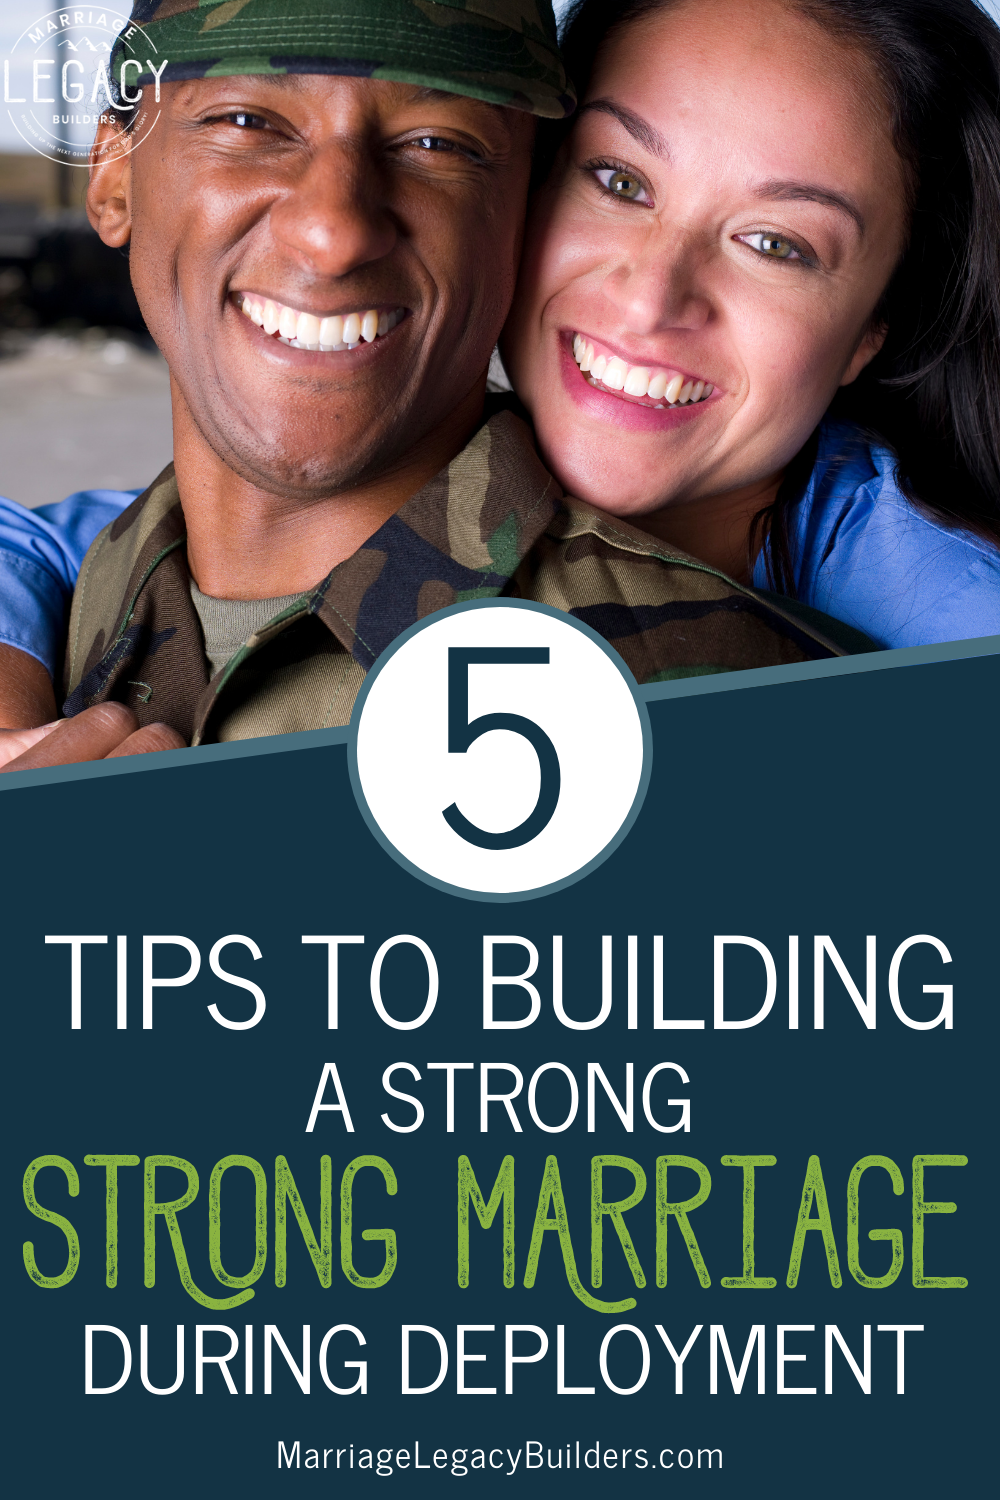 5 Tips to Build a Strong Marriage During Deployment